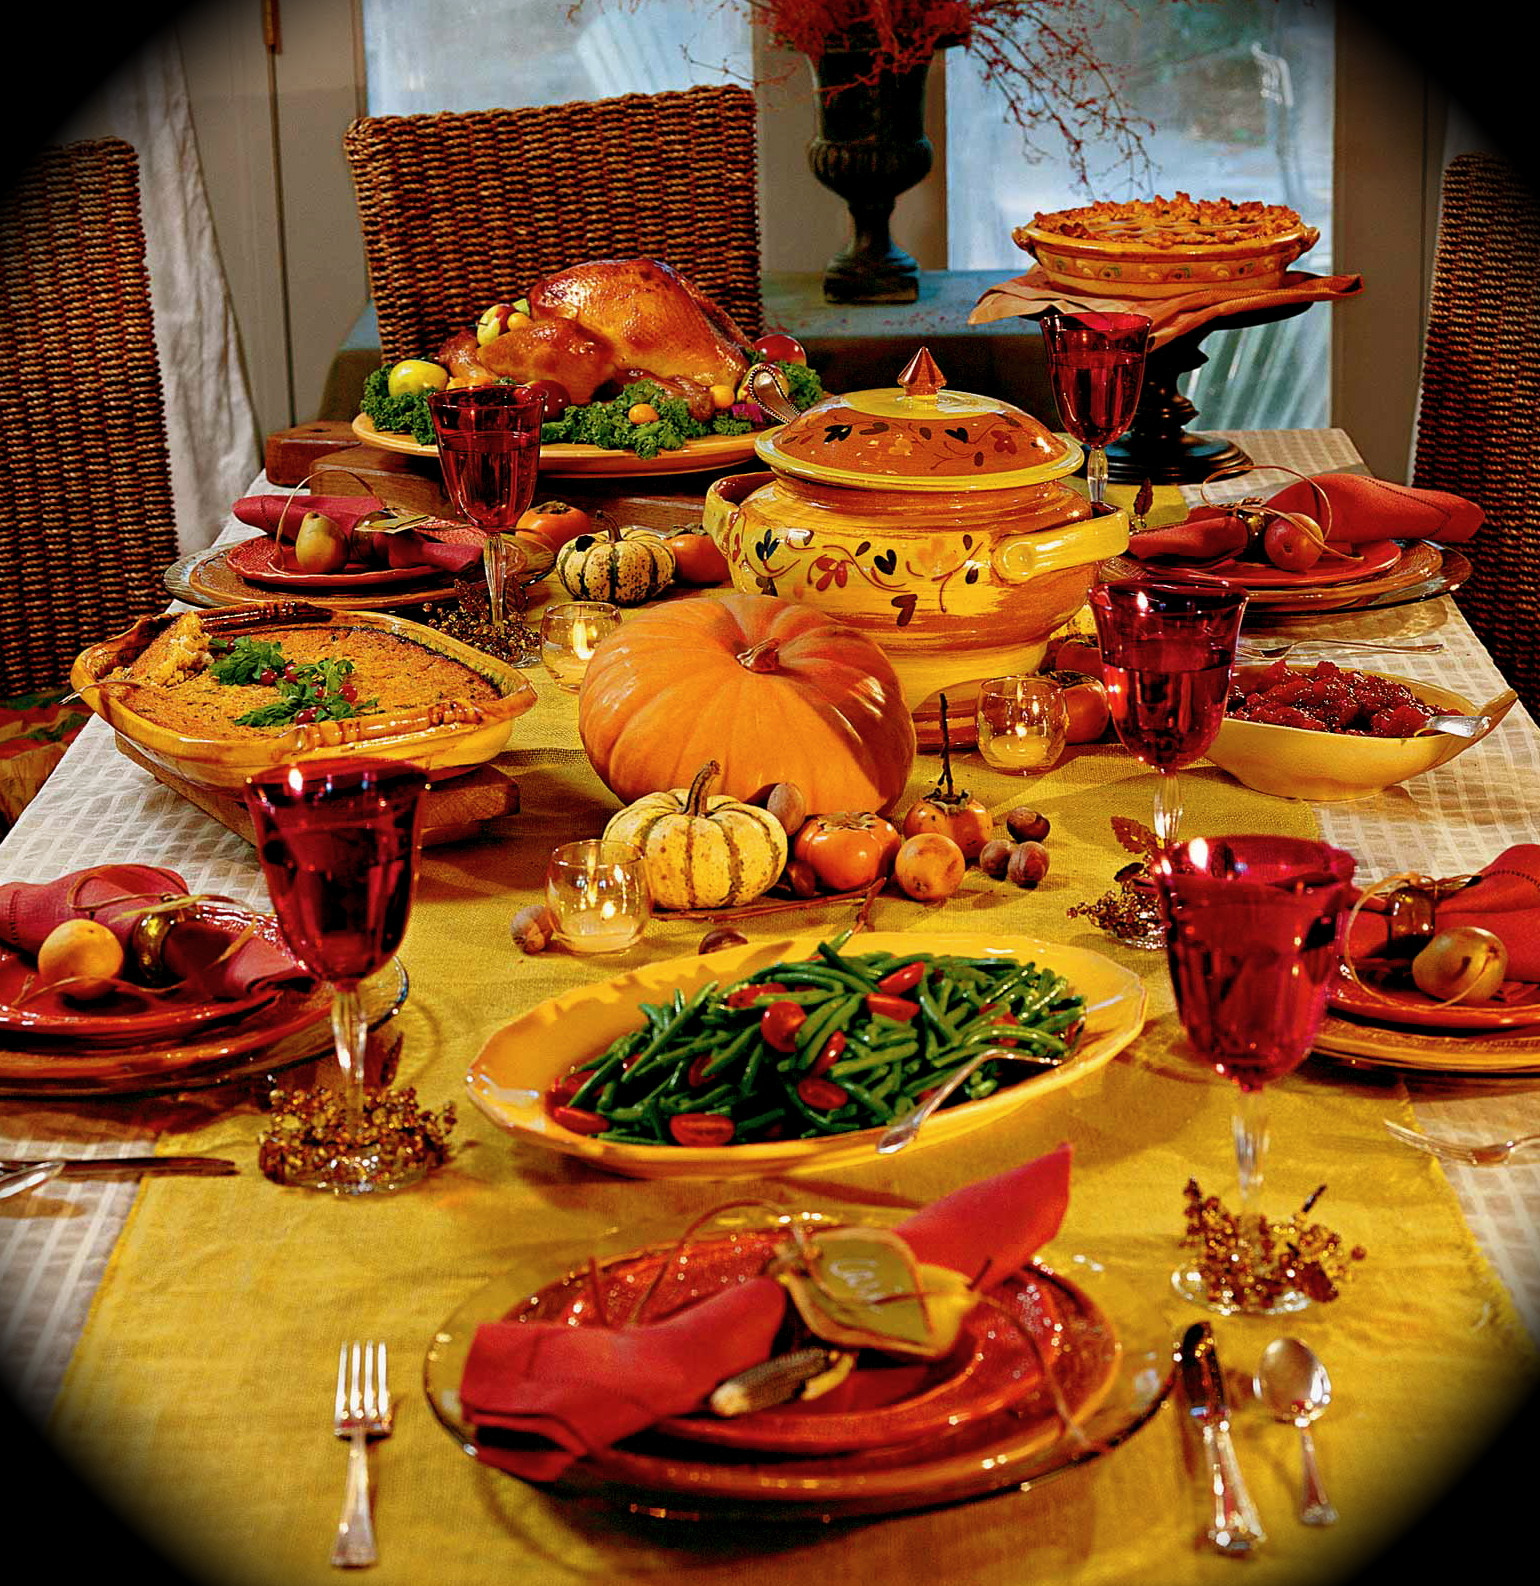 Low Fat Thanksgiving Recipes  The Best Low Fat Thanksgiving Recipes Best Diet and